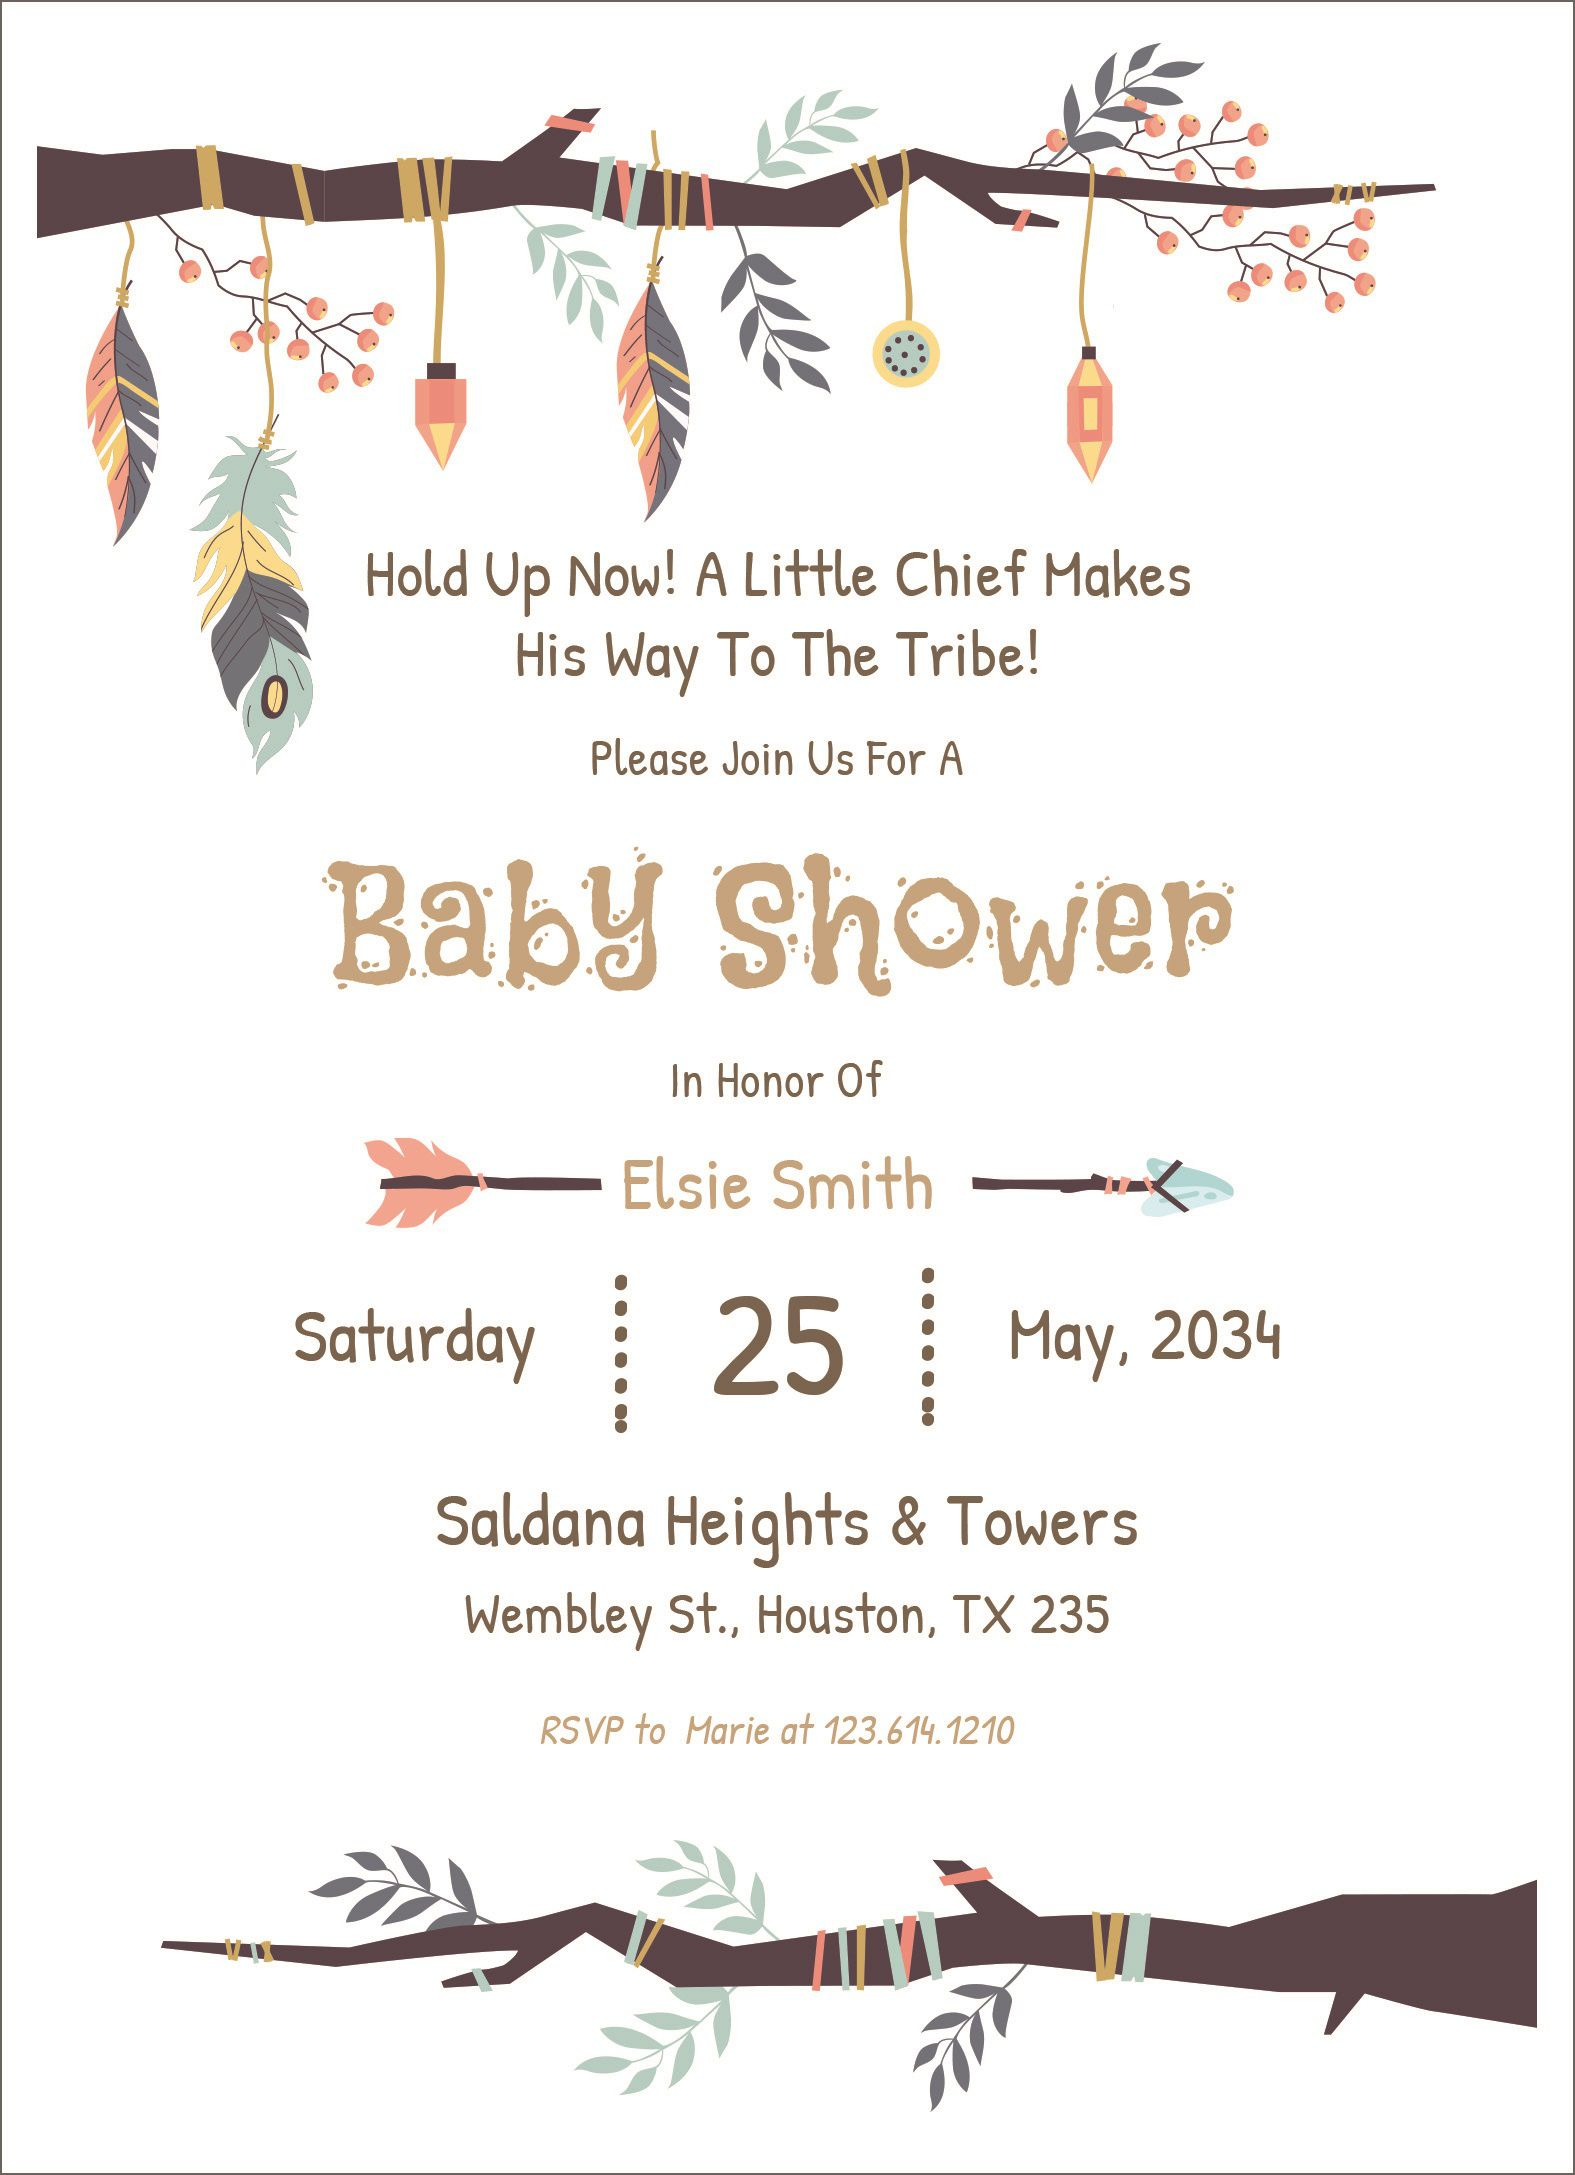 005 Amazing Free Baby Shower Card Template For Word High Def Full